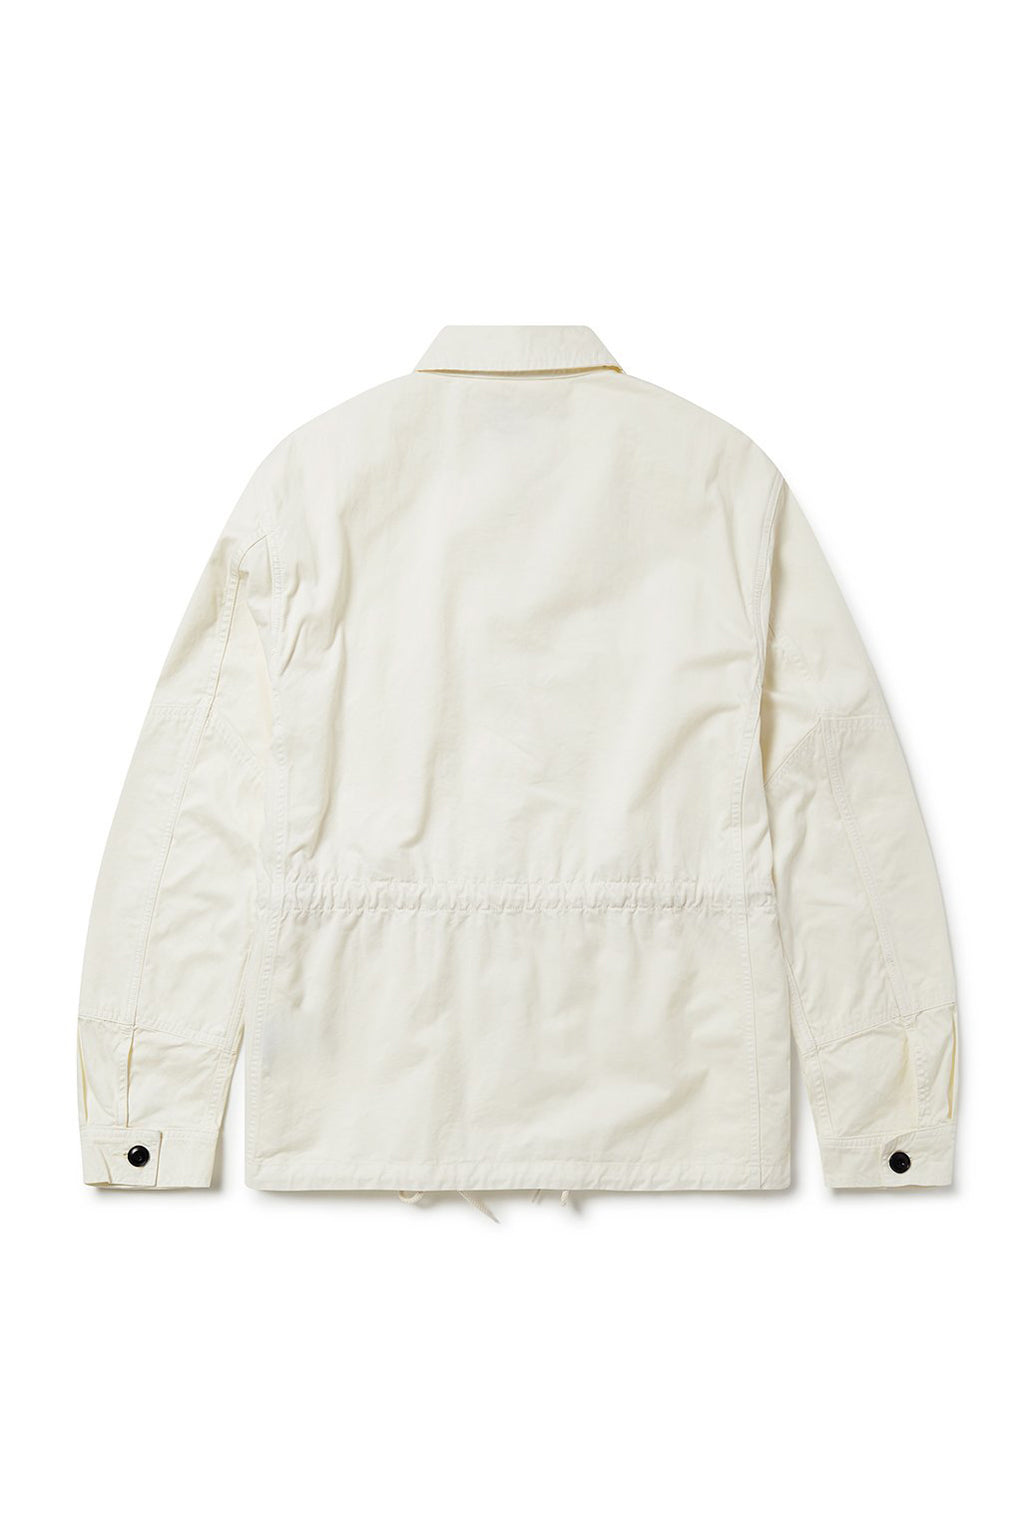 ALBAM Military Field Jacket, Ecru